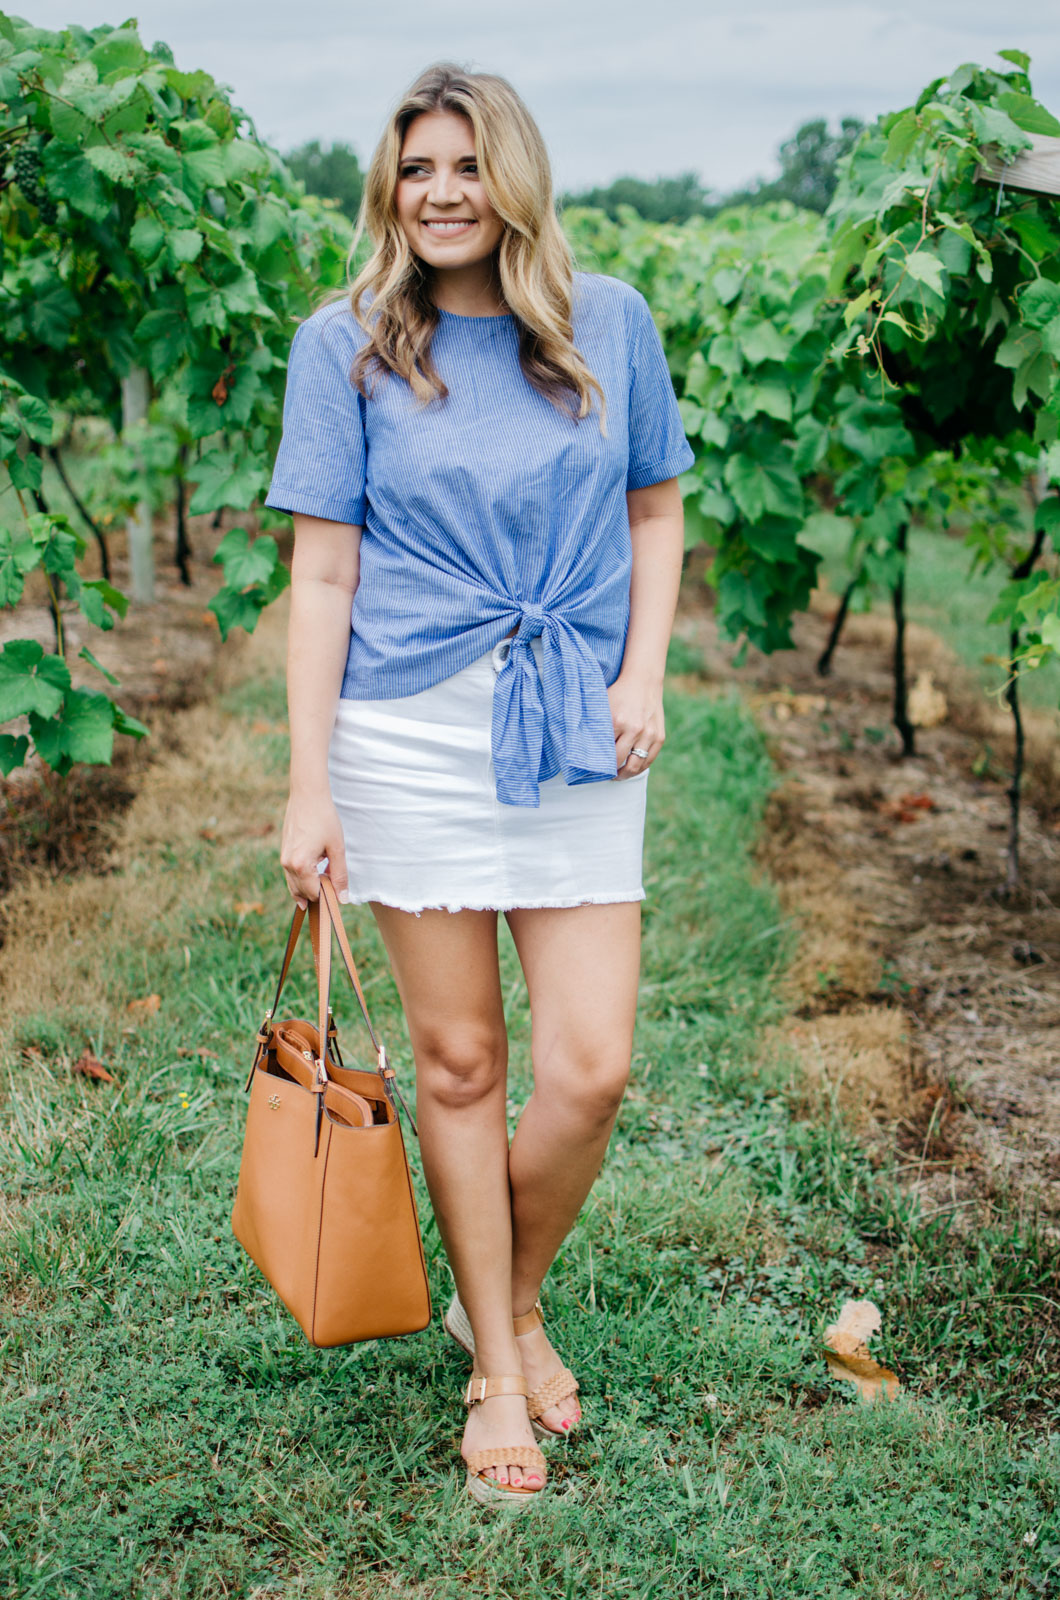 what to wear to a winery - tie front top   Want more cute Summer outfits? Head to bylaurenm.com!